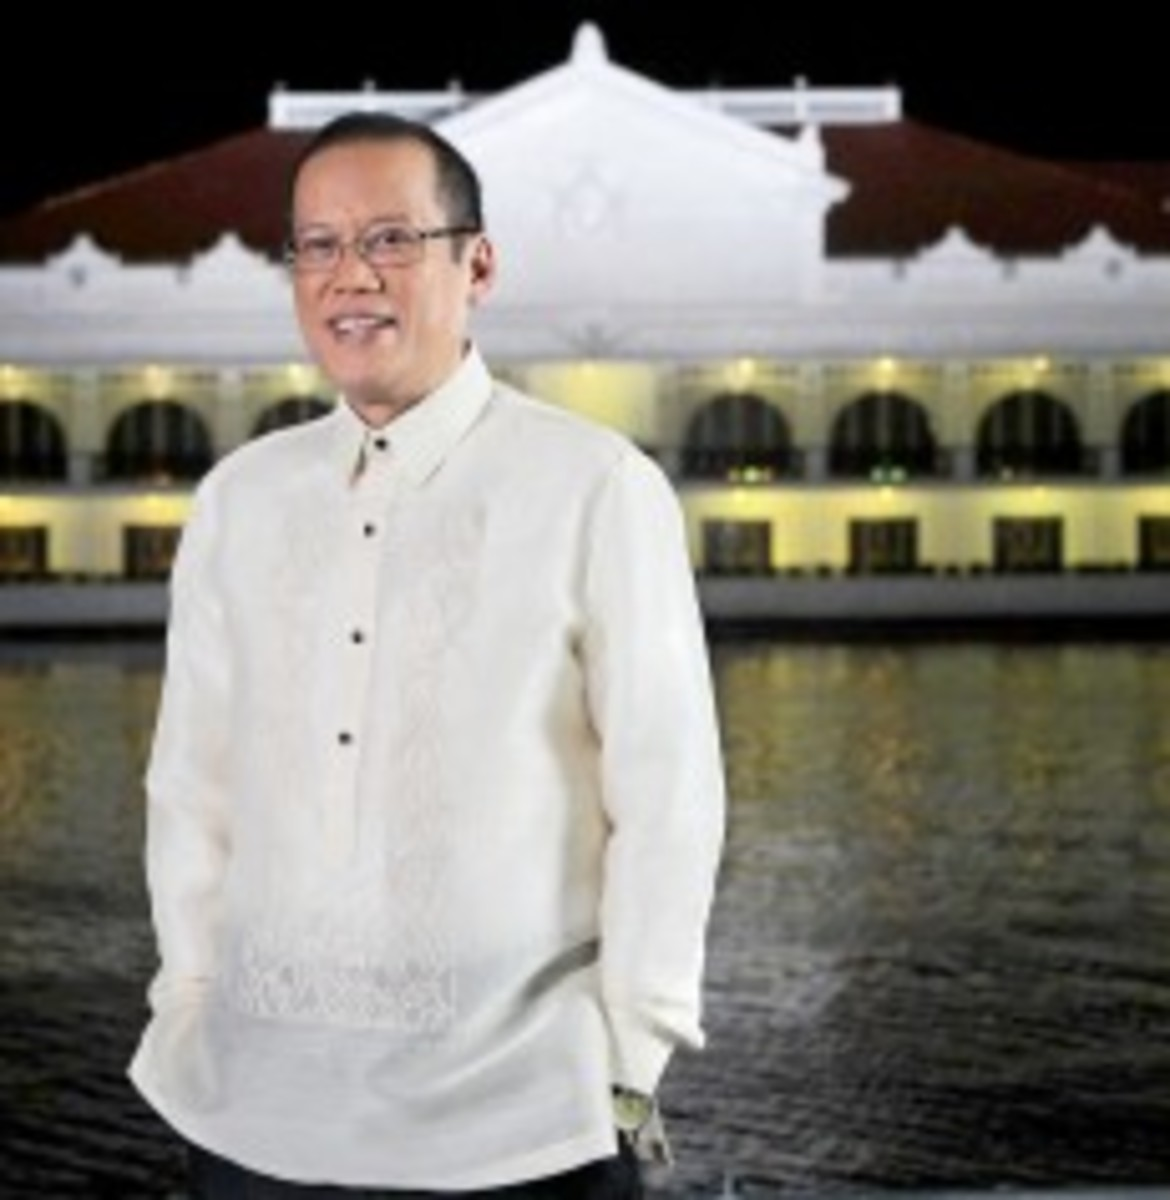 15th President of the Republic of the Philippines, Benigno Simeon Aquino I